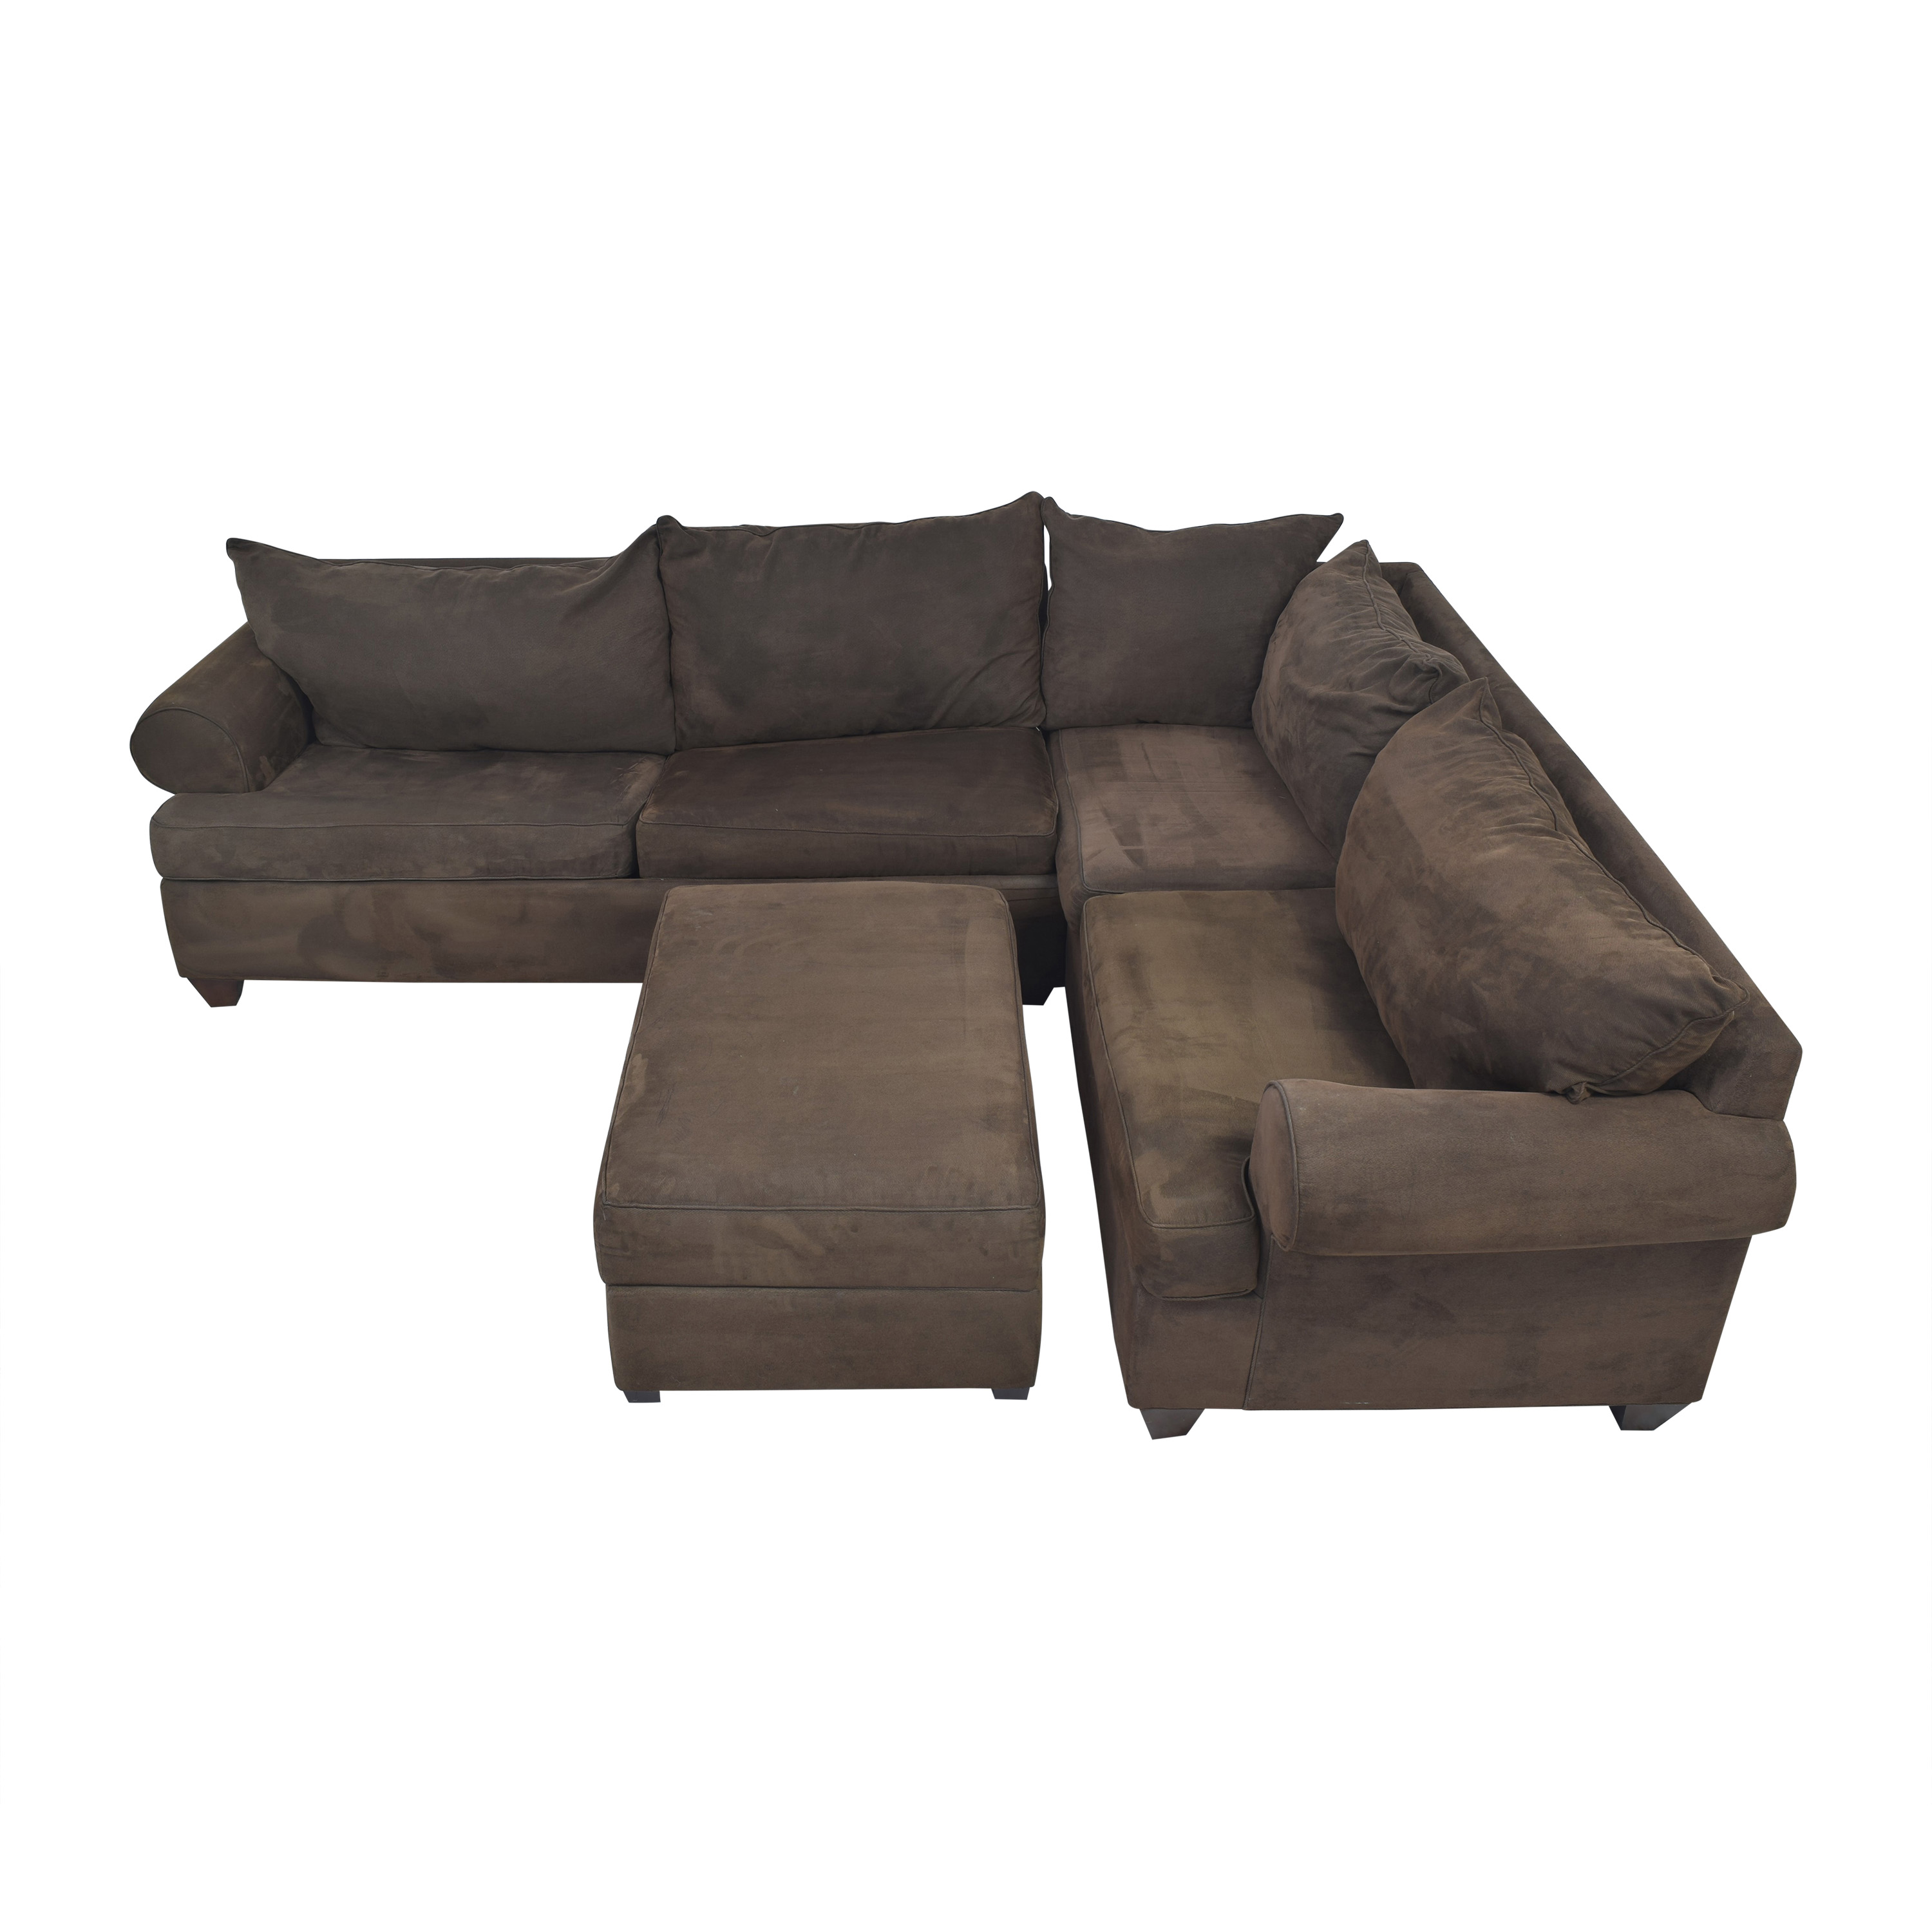 shop Raymour & Flanigan Three Piece Sectional Sleeper Sofa with Ottoman Raymour & Flanigan Sectionals